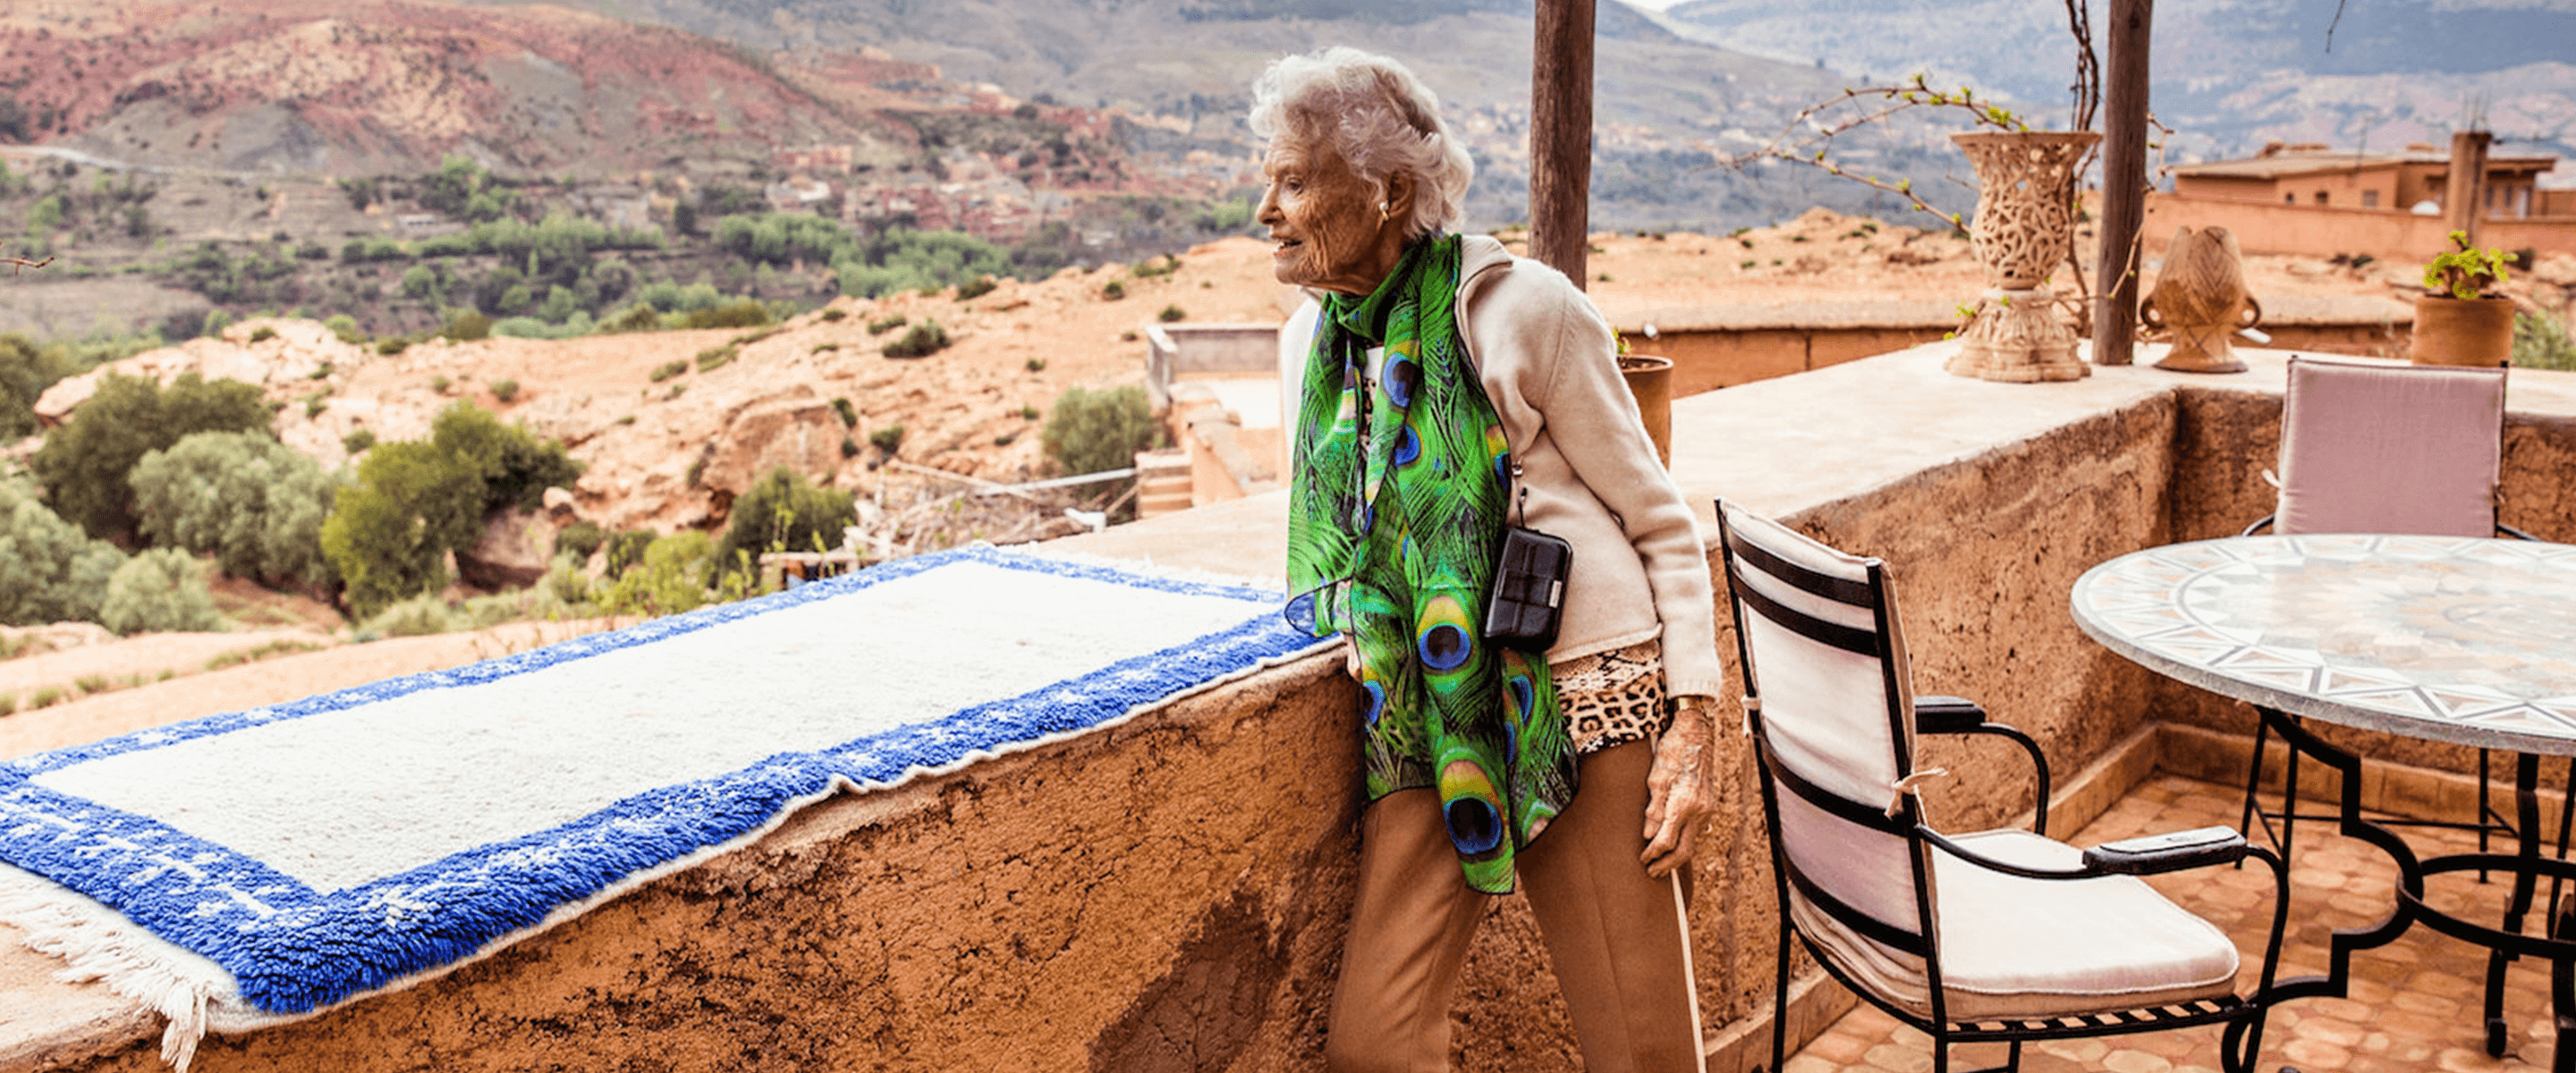 Eve Branson looking out over the Moroccan hillside from a balcony